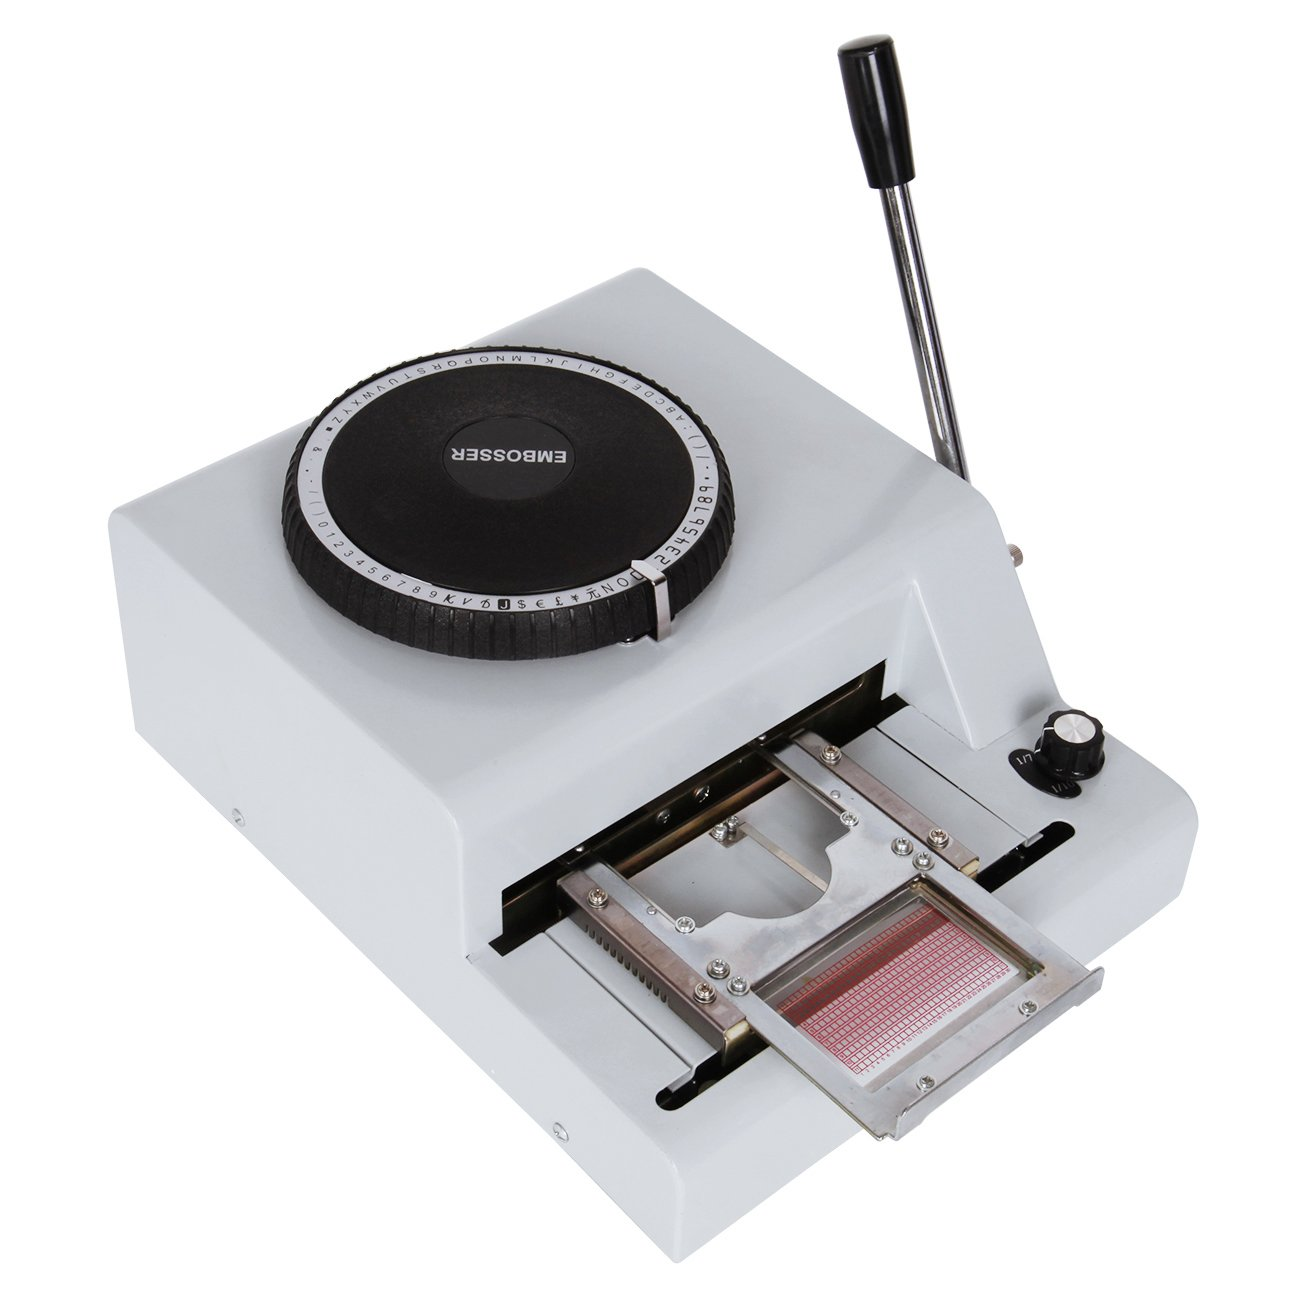 Ambienceo Multi-functional 72 Characters Manual Embosser Code Embossing Stamping Machine for PVC Card VIP Card Credit Card Gift Card